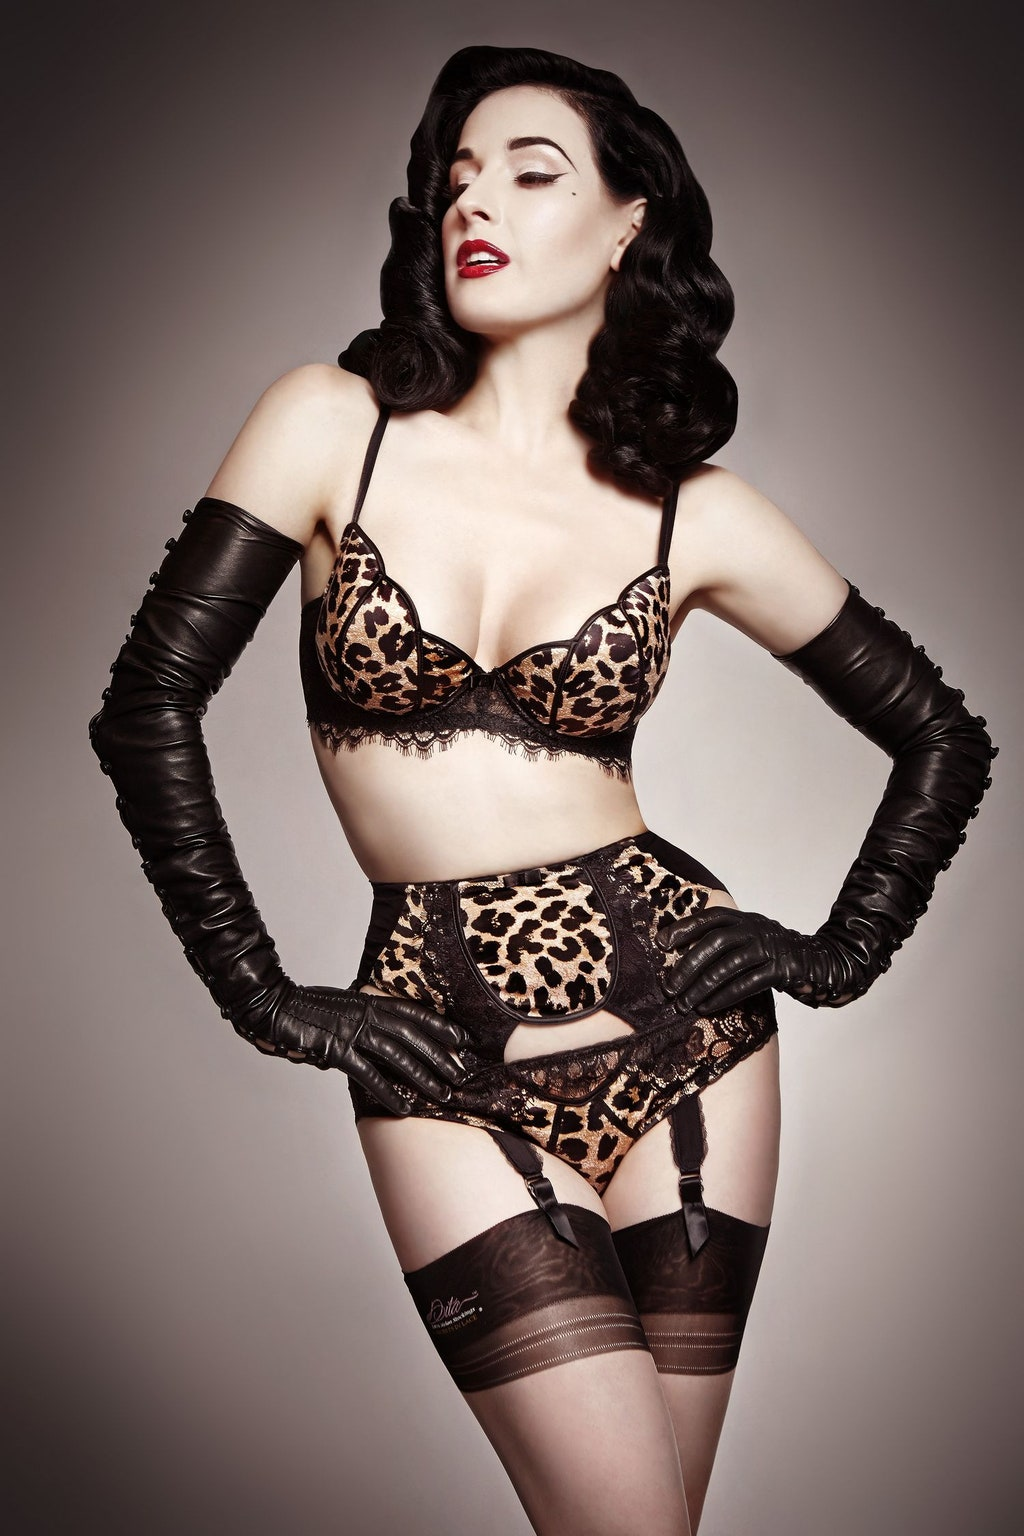 sweet Interracial lingerie glamour